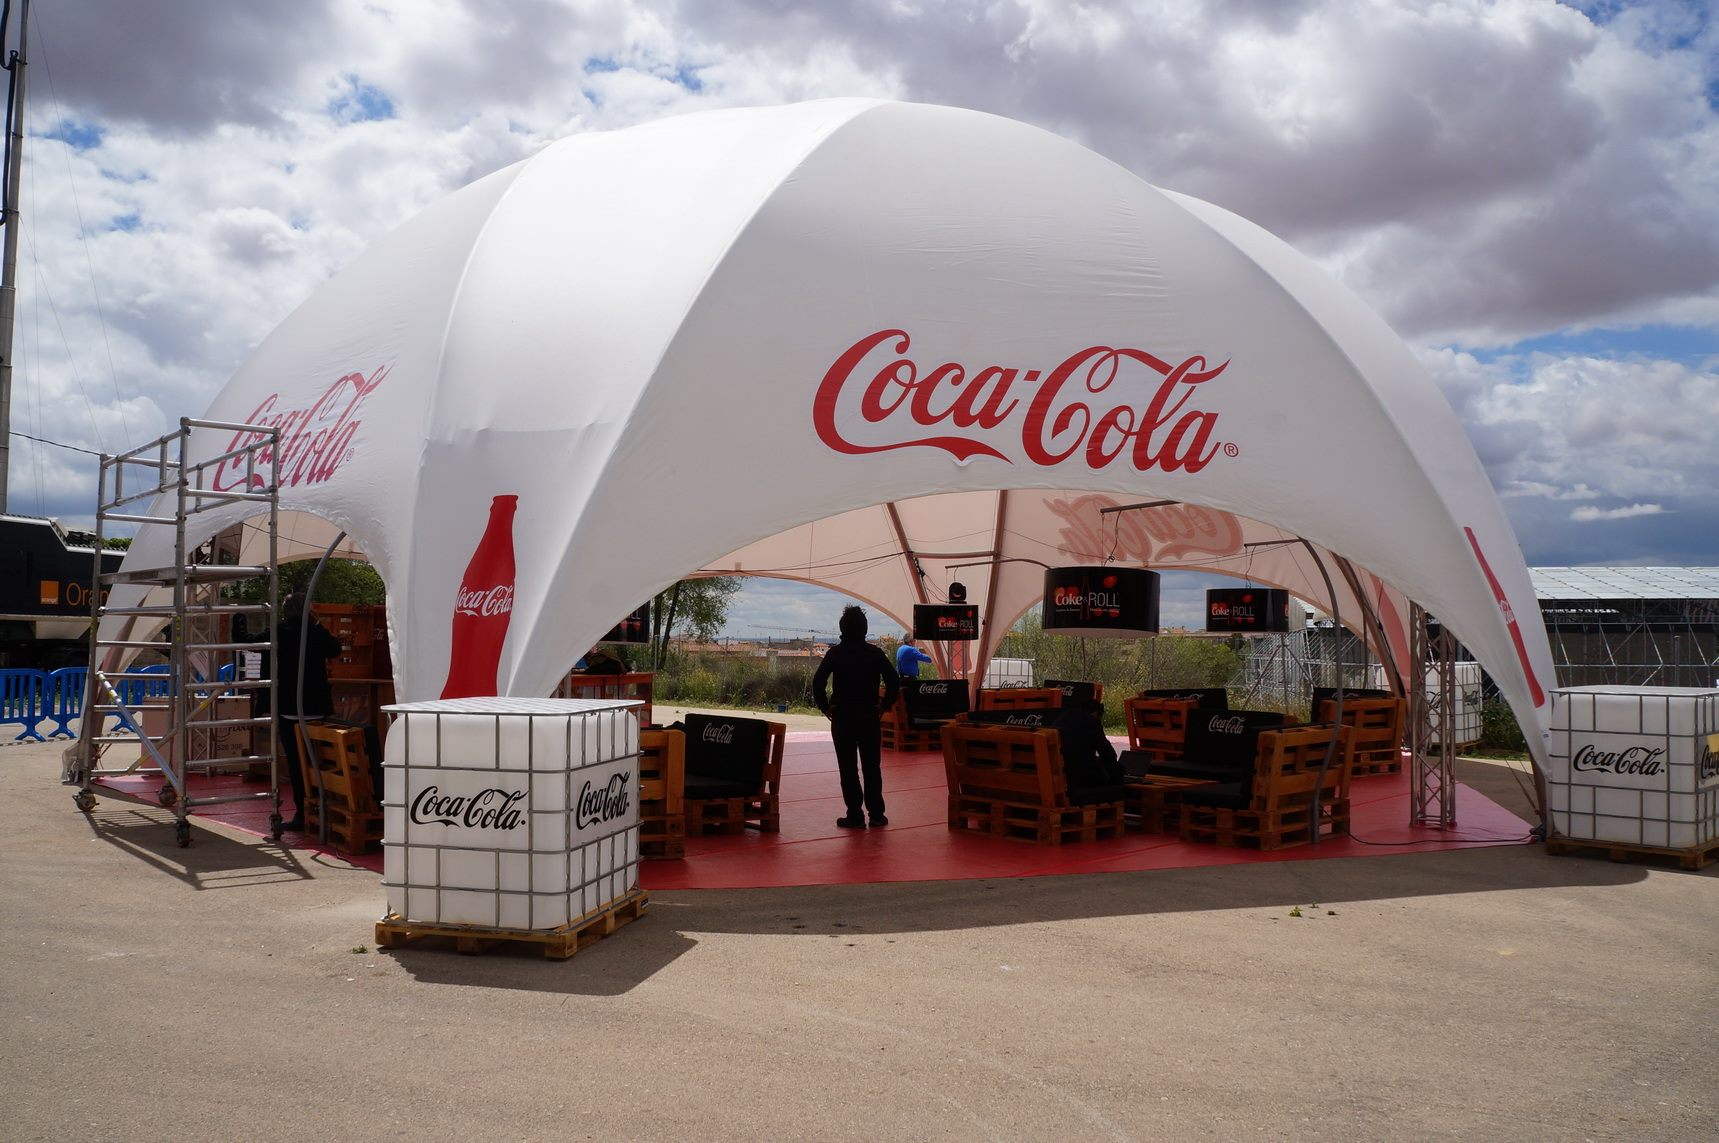 Hexadome Tent - branded